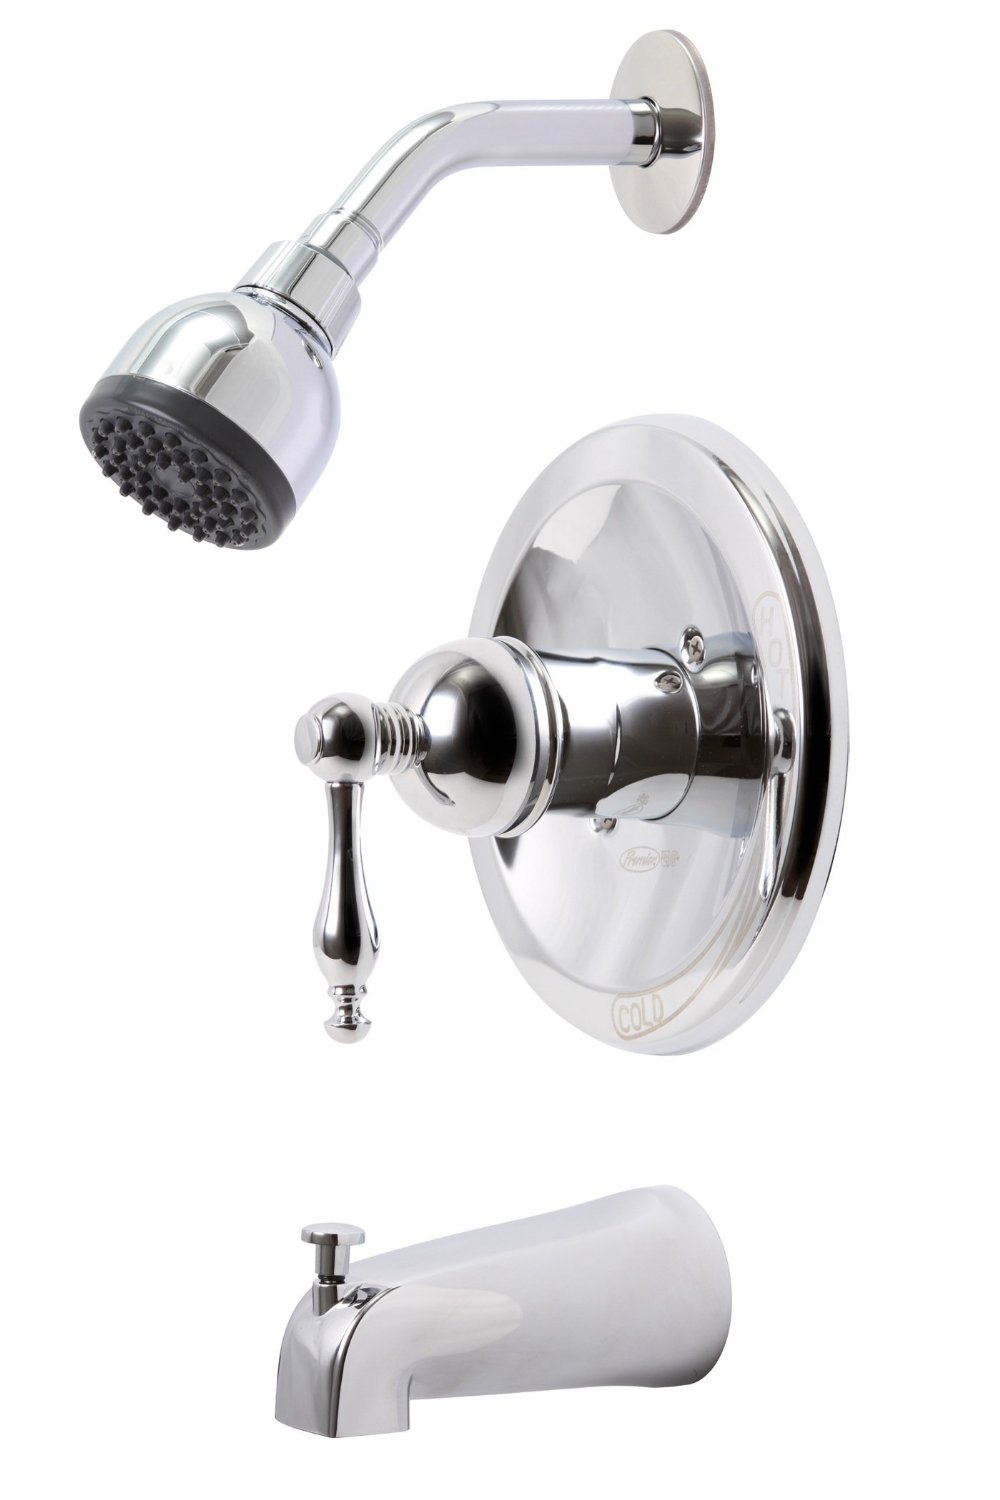 WELLINGTON SINGLE-HANDLE CERAMIC DISC TUB AND SHOWER FAUCET SET, CHROME